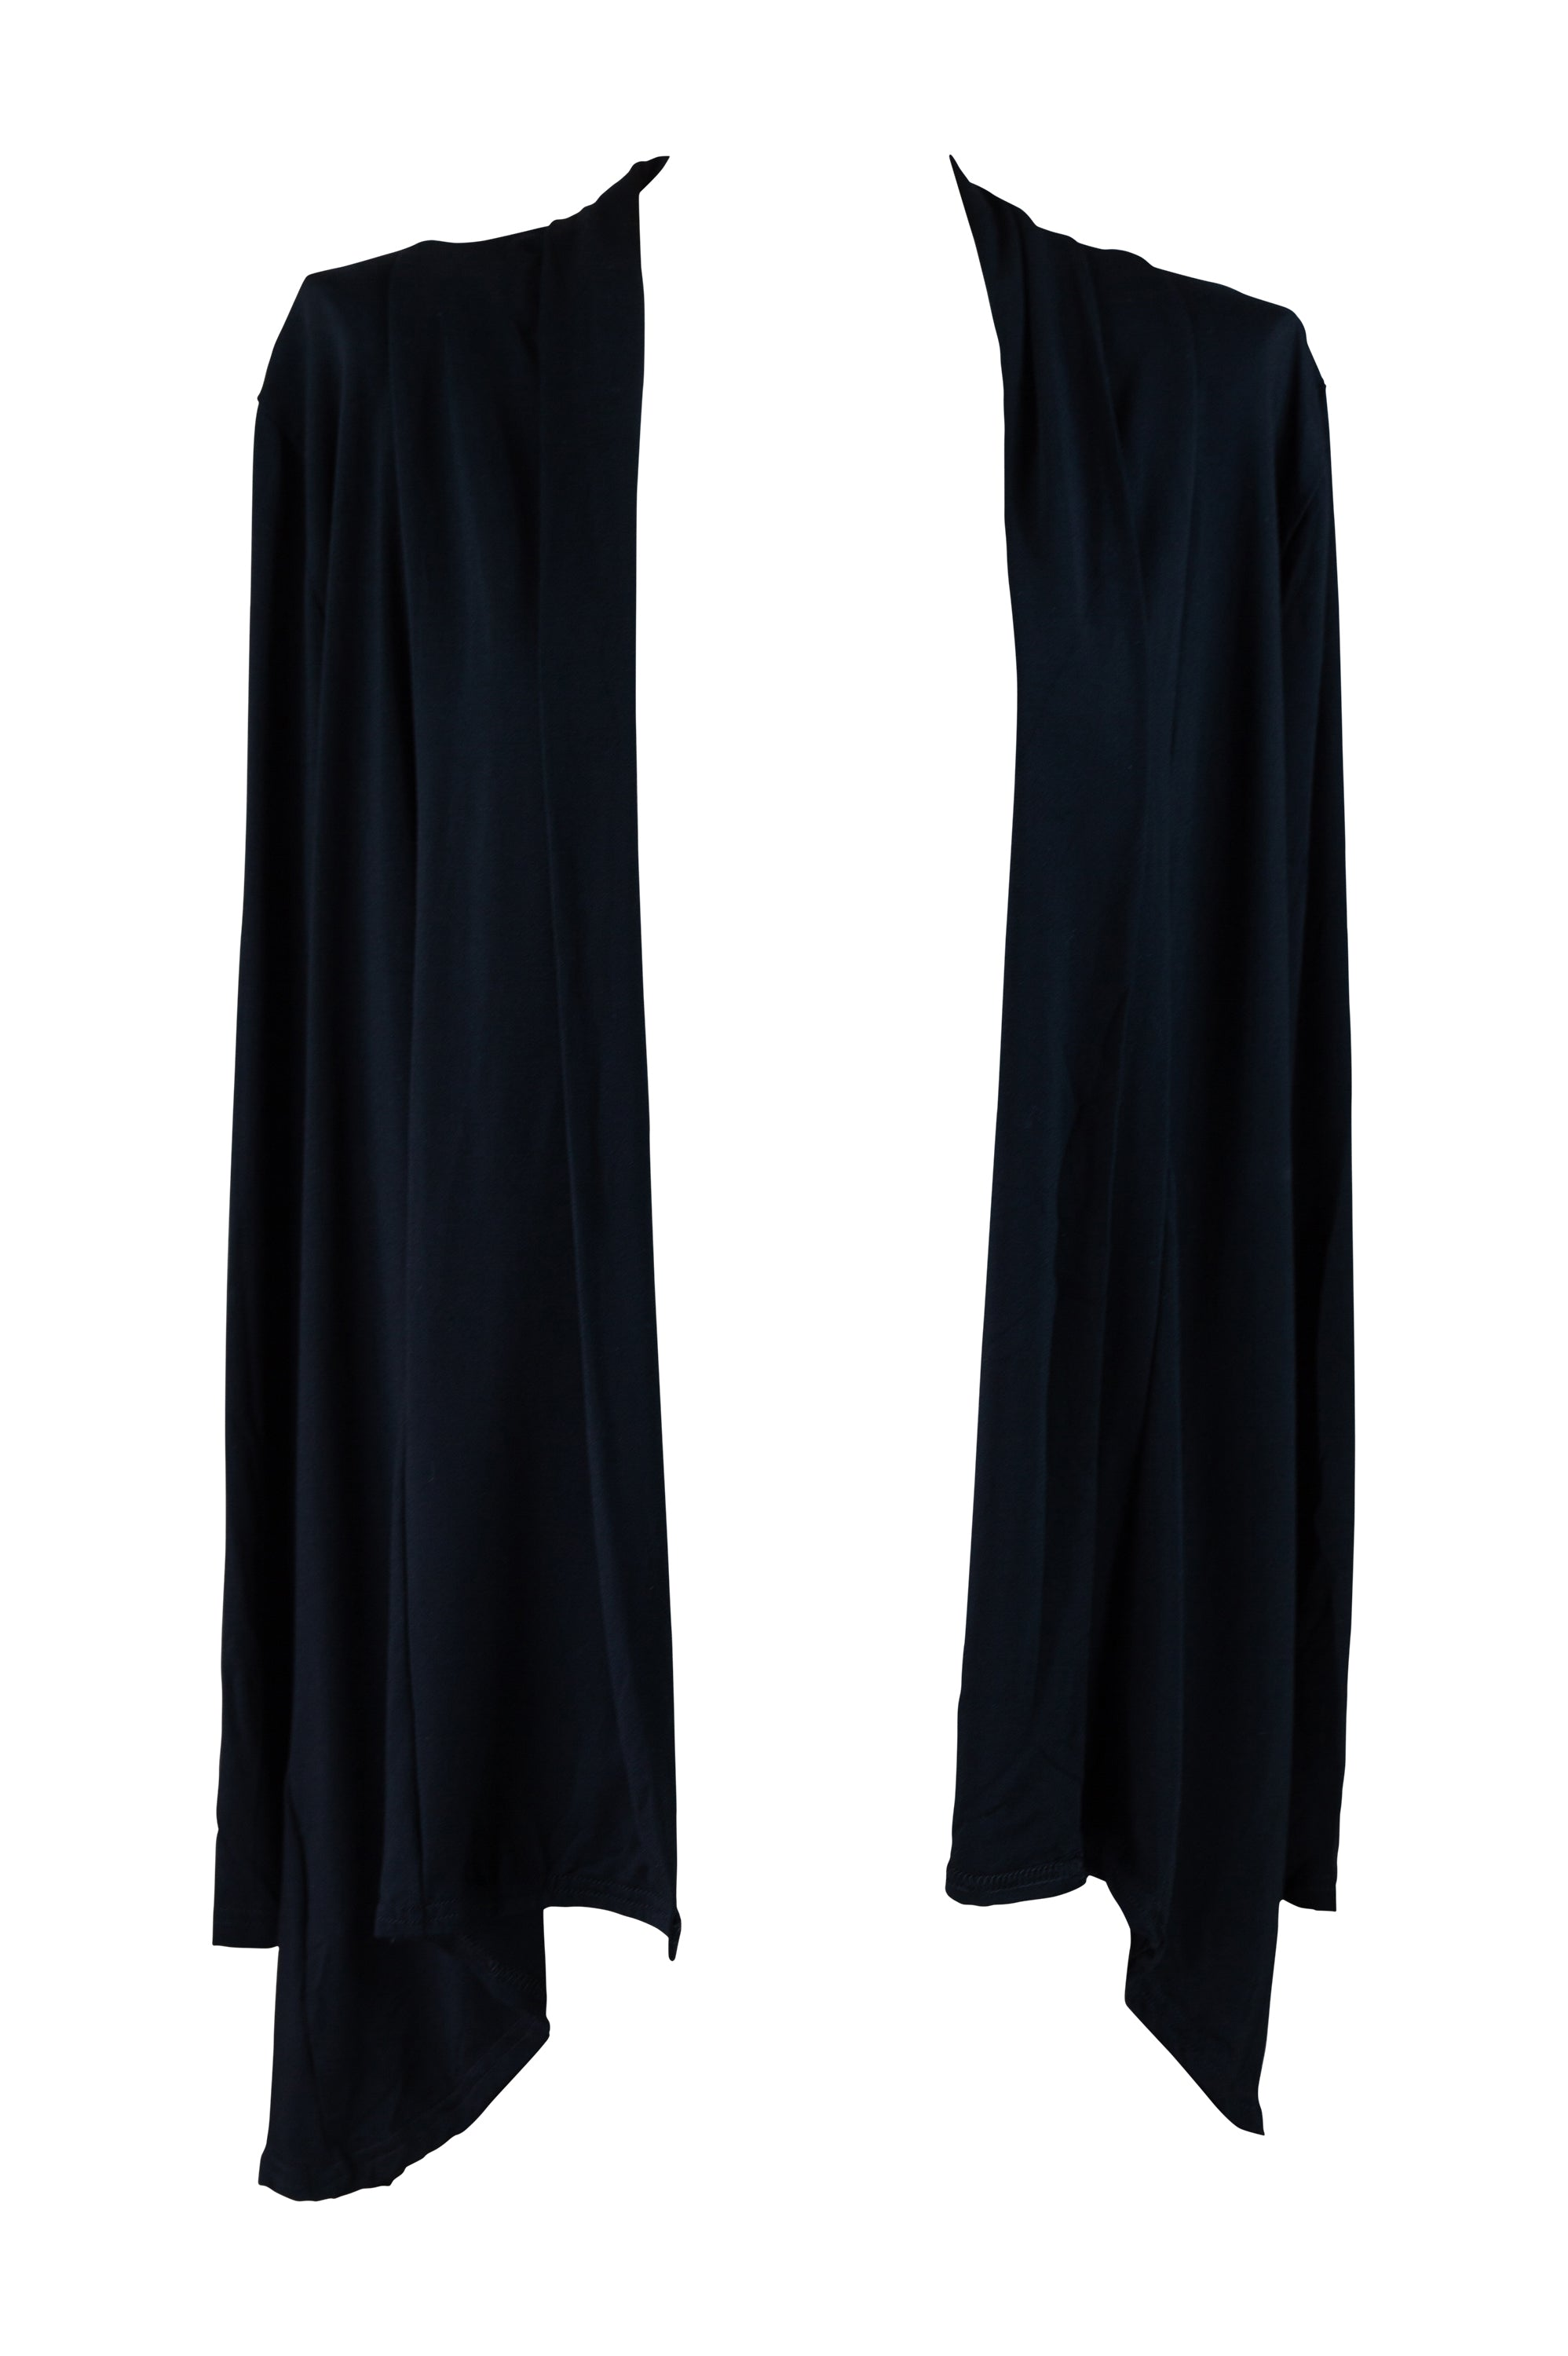 Layer Bamboo Cardigan ☾ Maxi & Midi - Black **Pre-Order Item** - Saffron Road